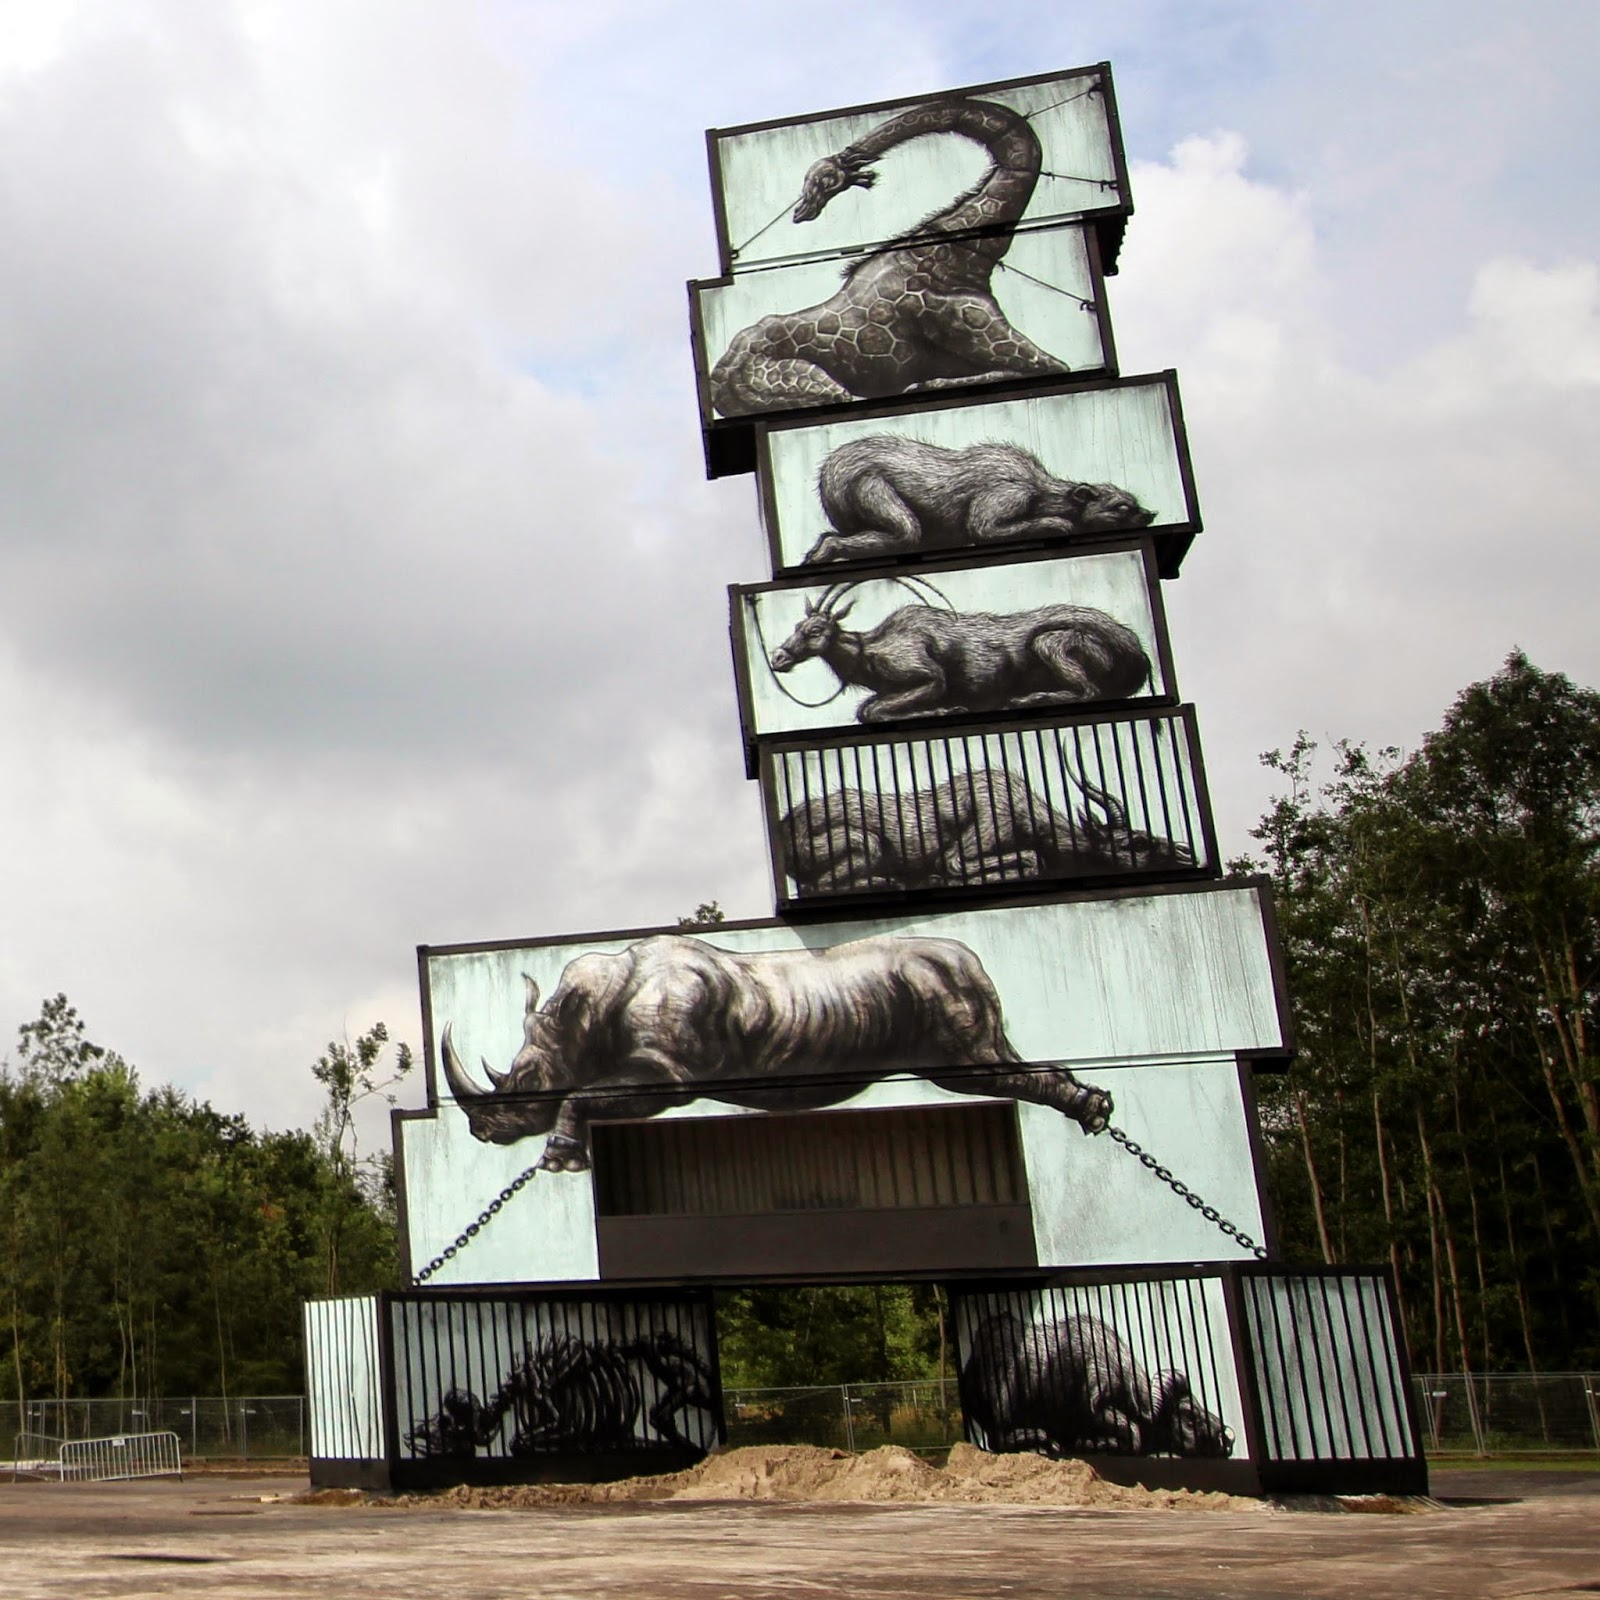 ROA is currently in Belgium where he was invited by the North West Walls Festival to paint in the city of Werchter.